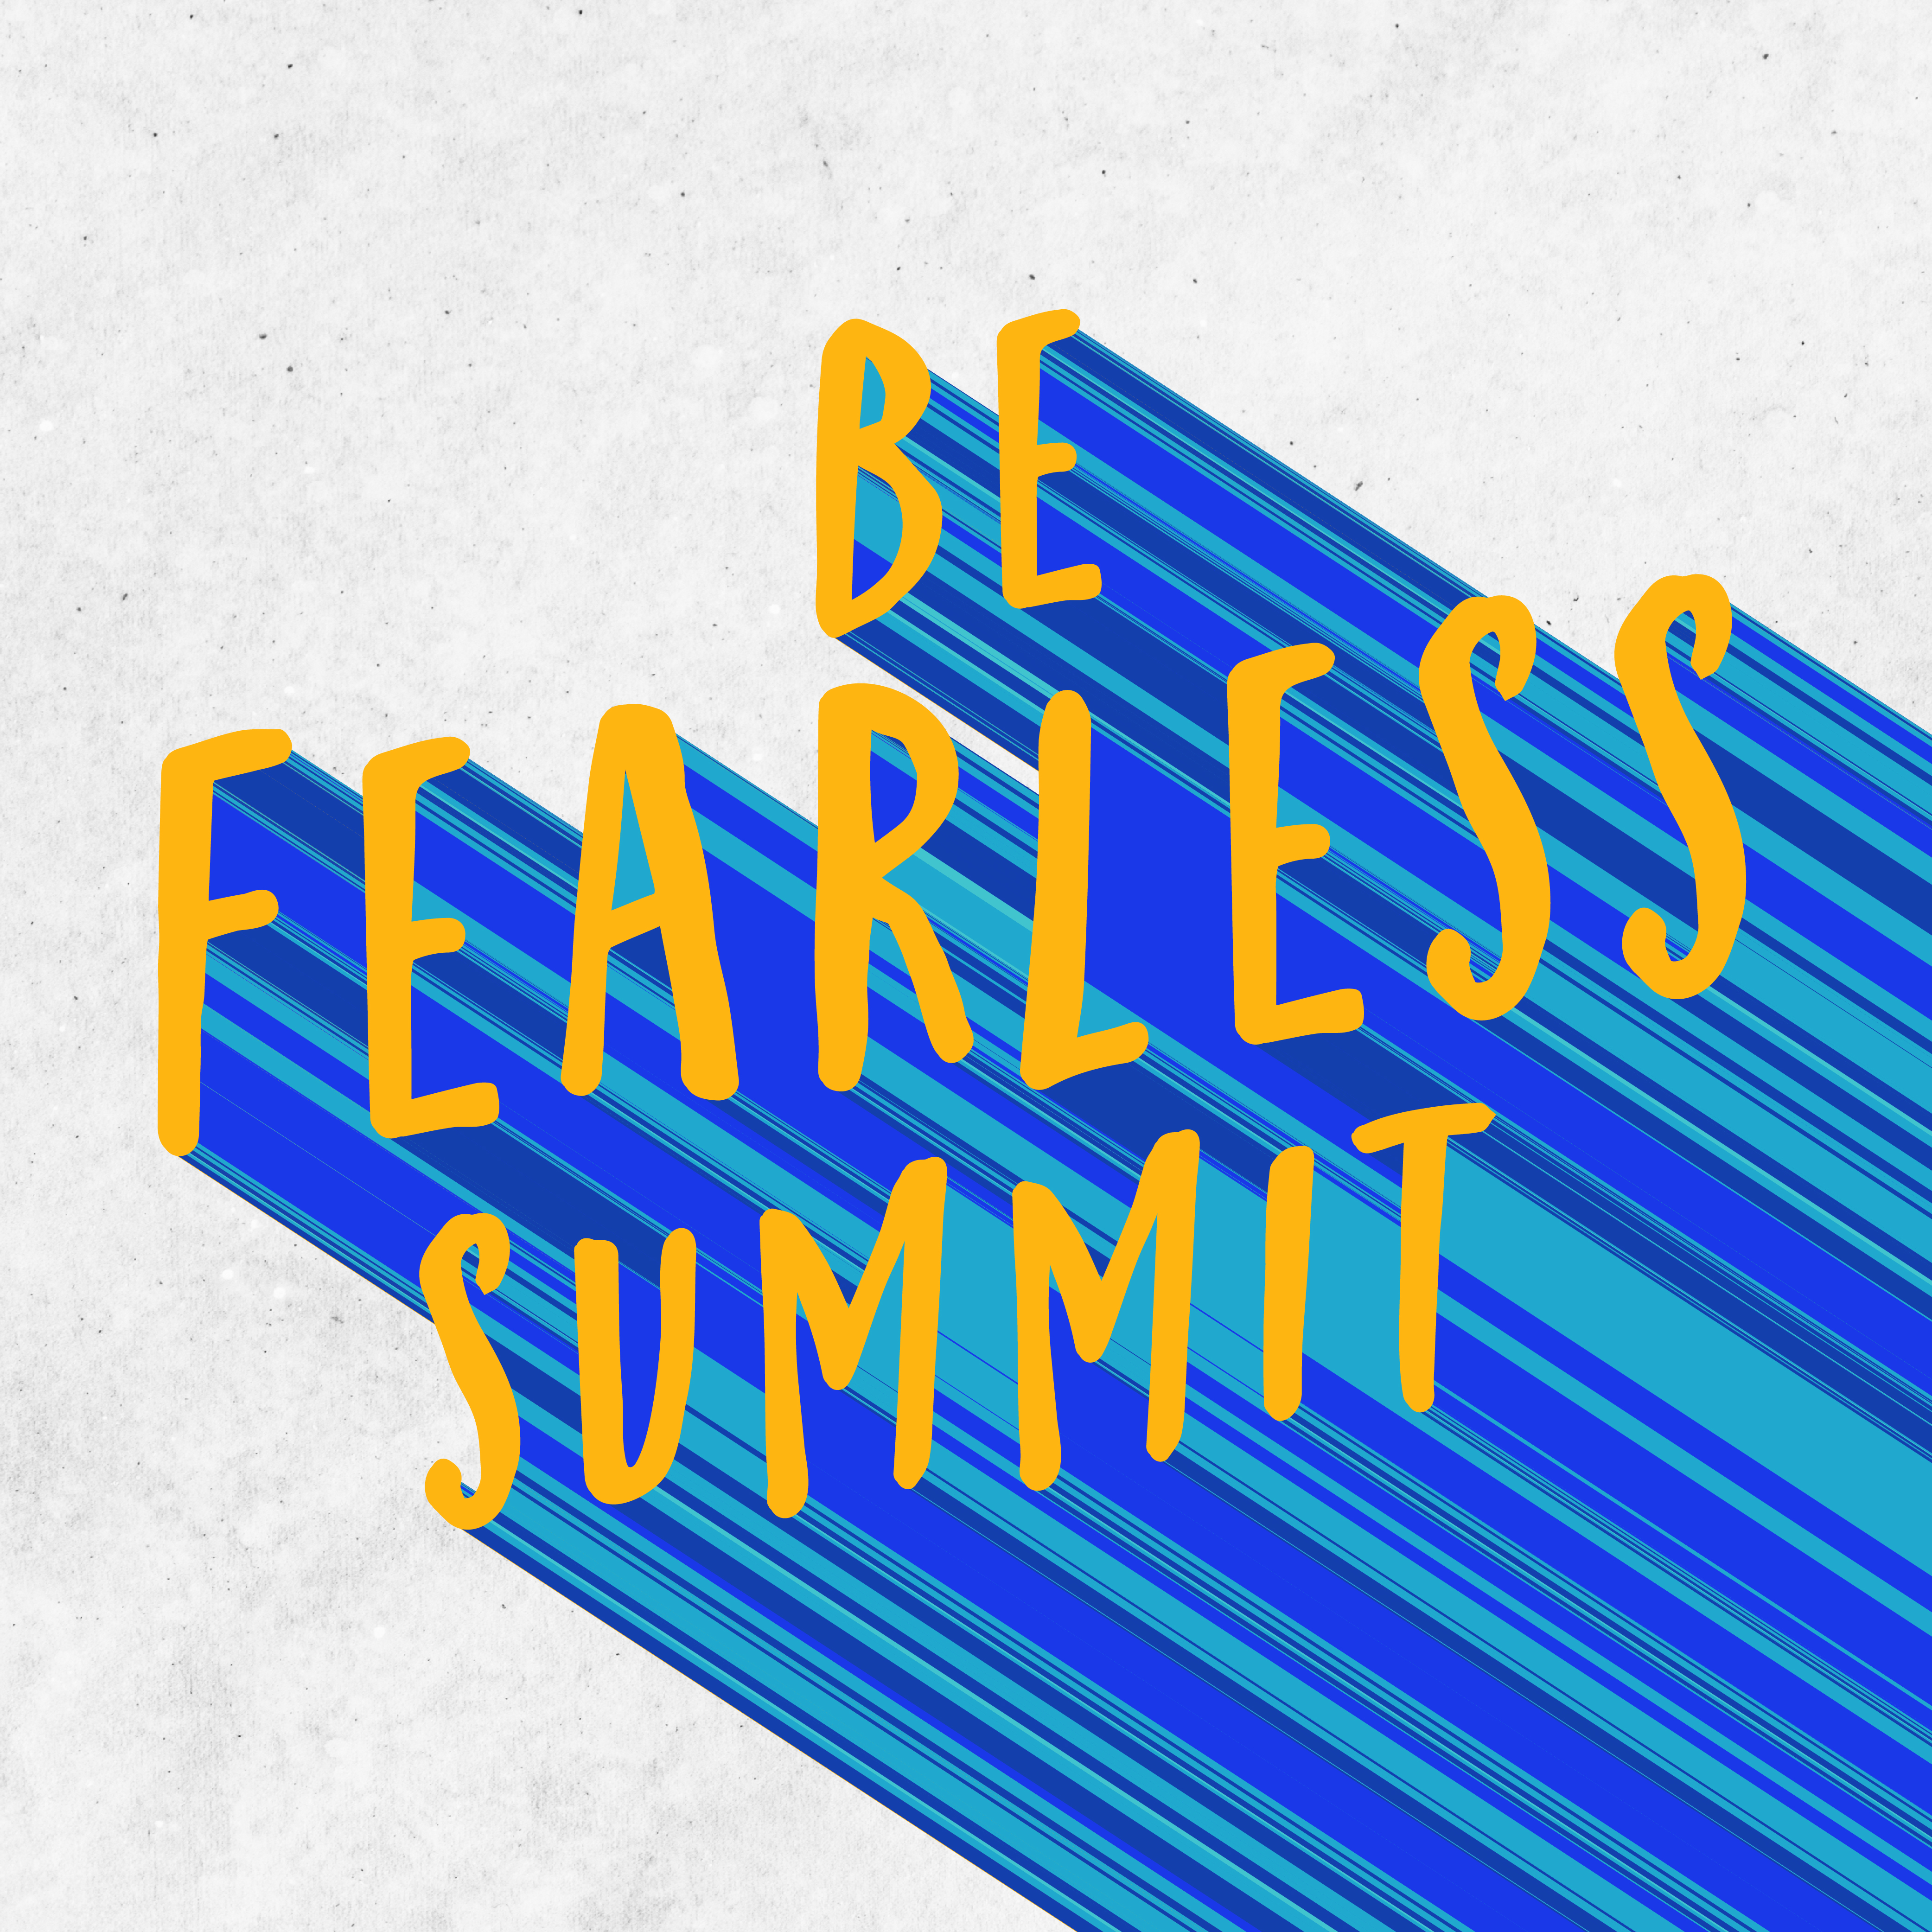 THE BE FEARLESS SUMMIT IS COMING TO Berkeley!